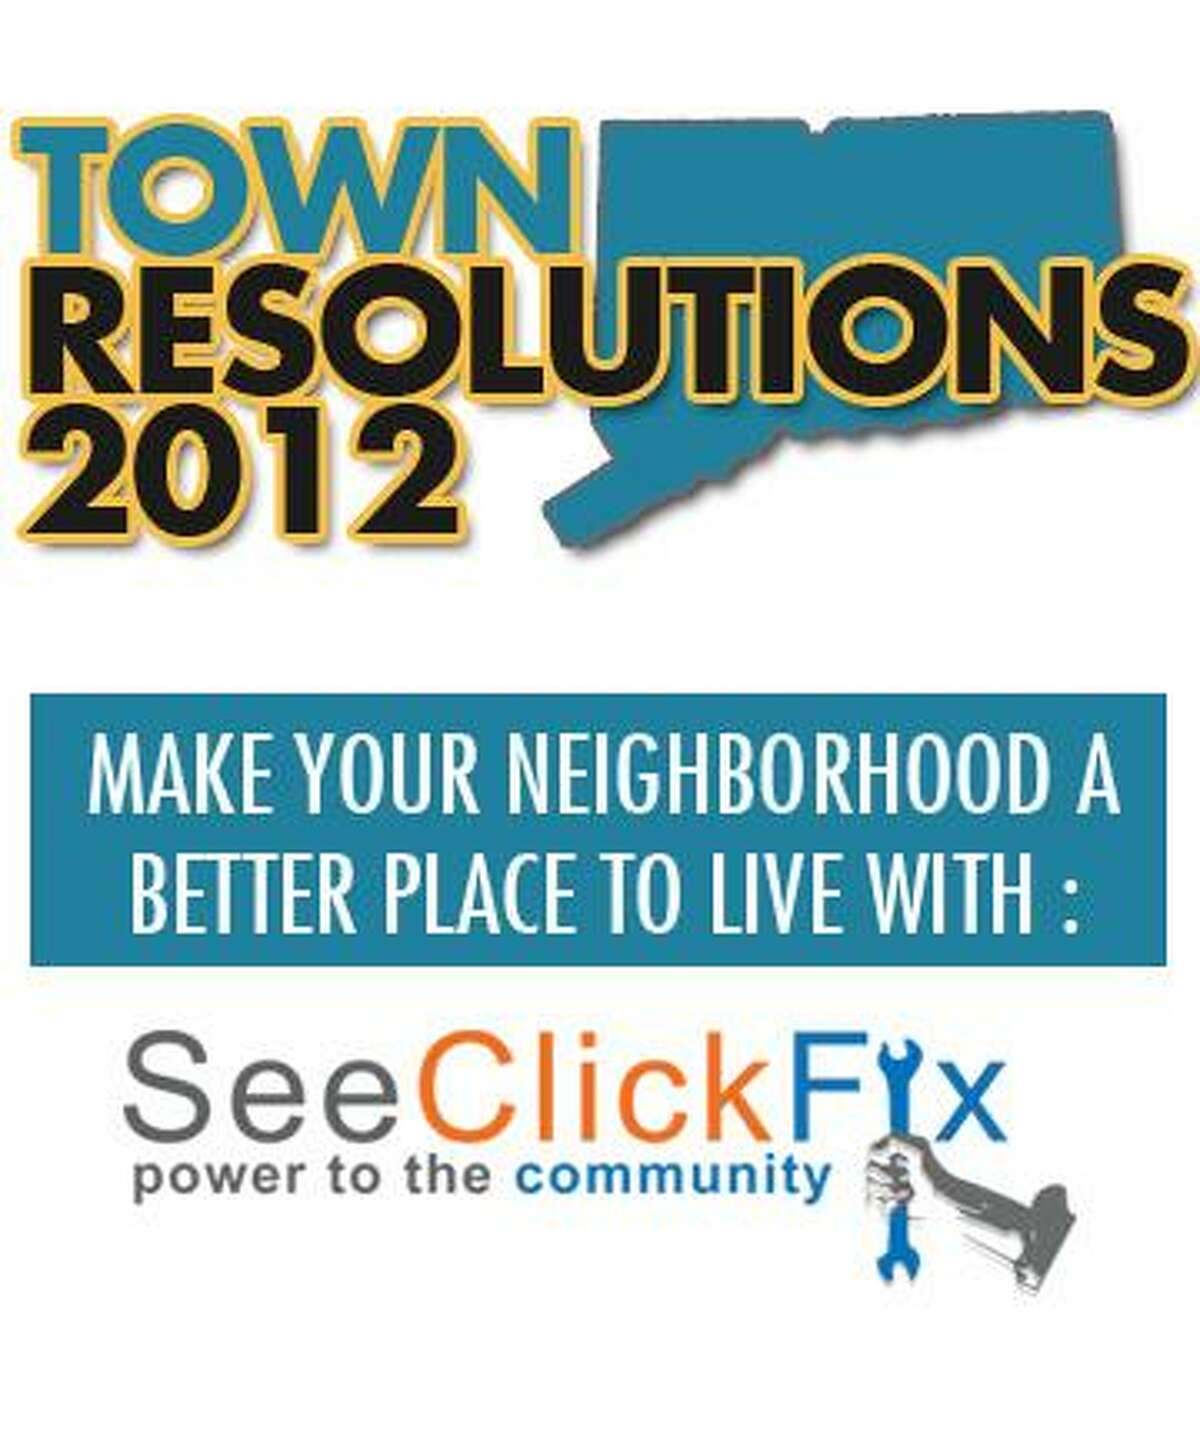 Propose resolutions for your town with SeeClickFix.